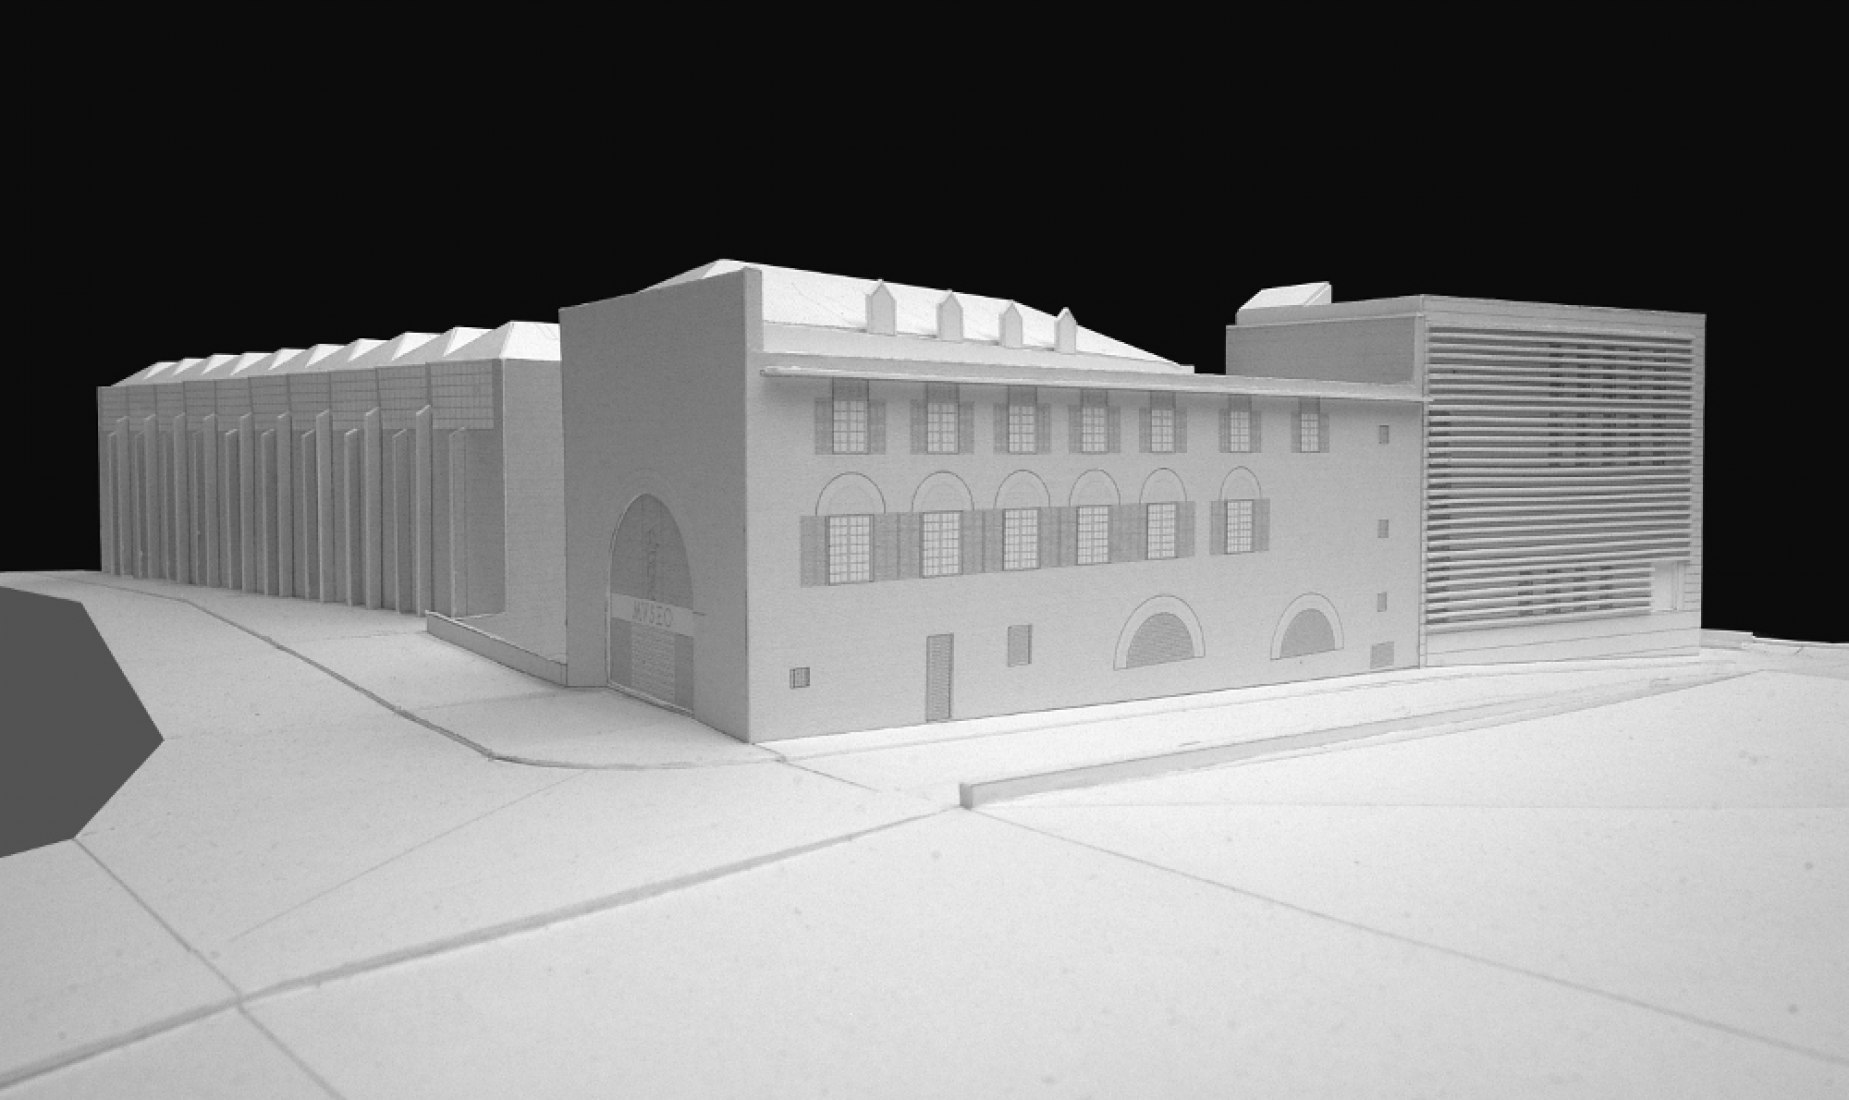 Exterior rendering. Extension of the National Museum of Roman Art of Mérida by Rafael Moneo